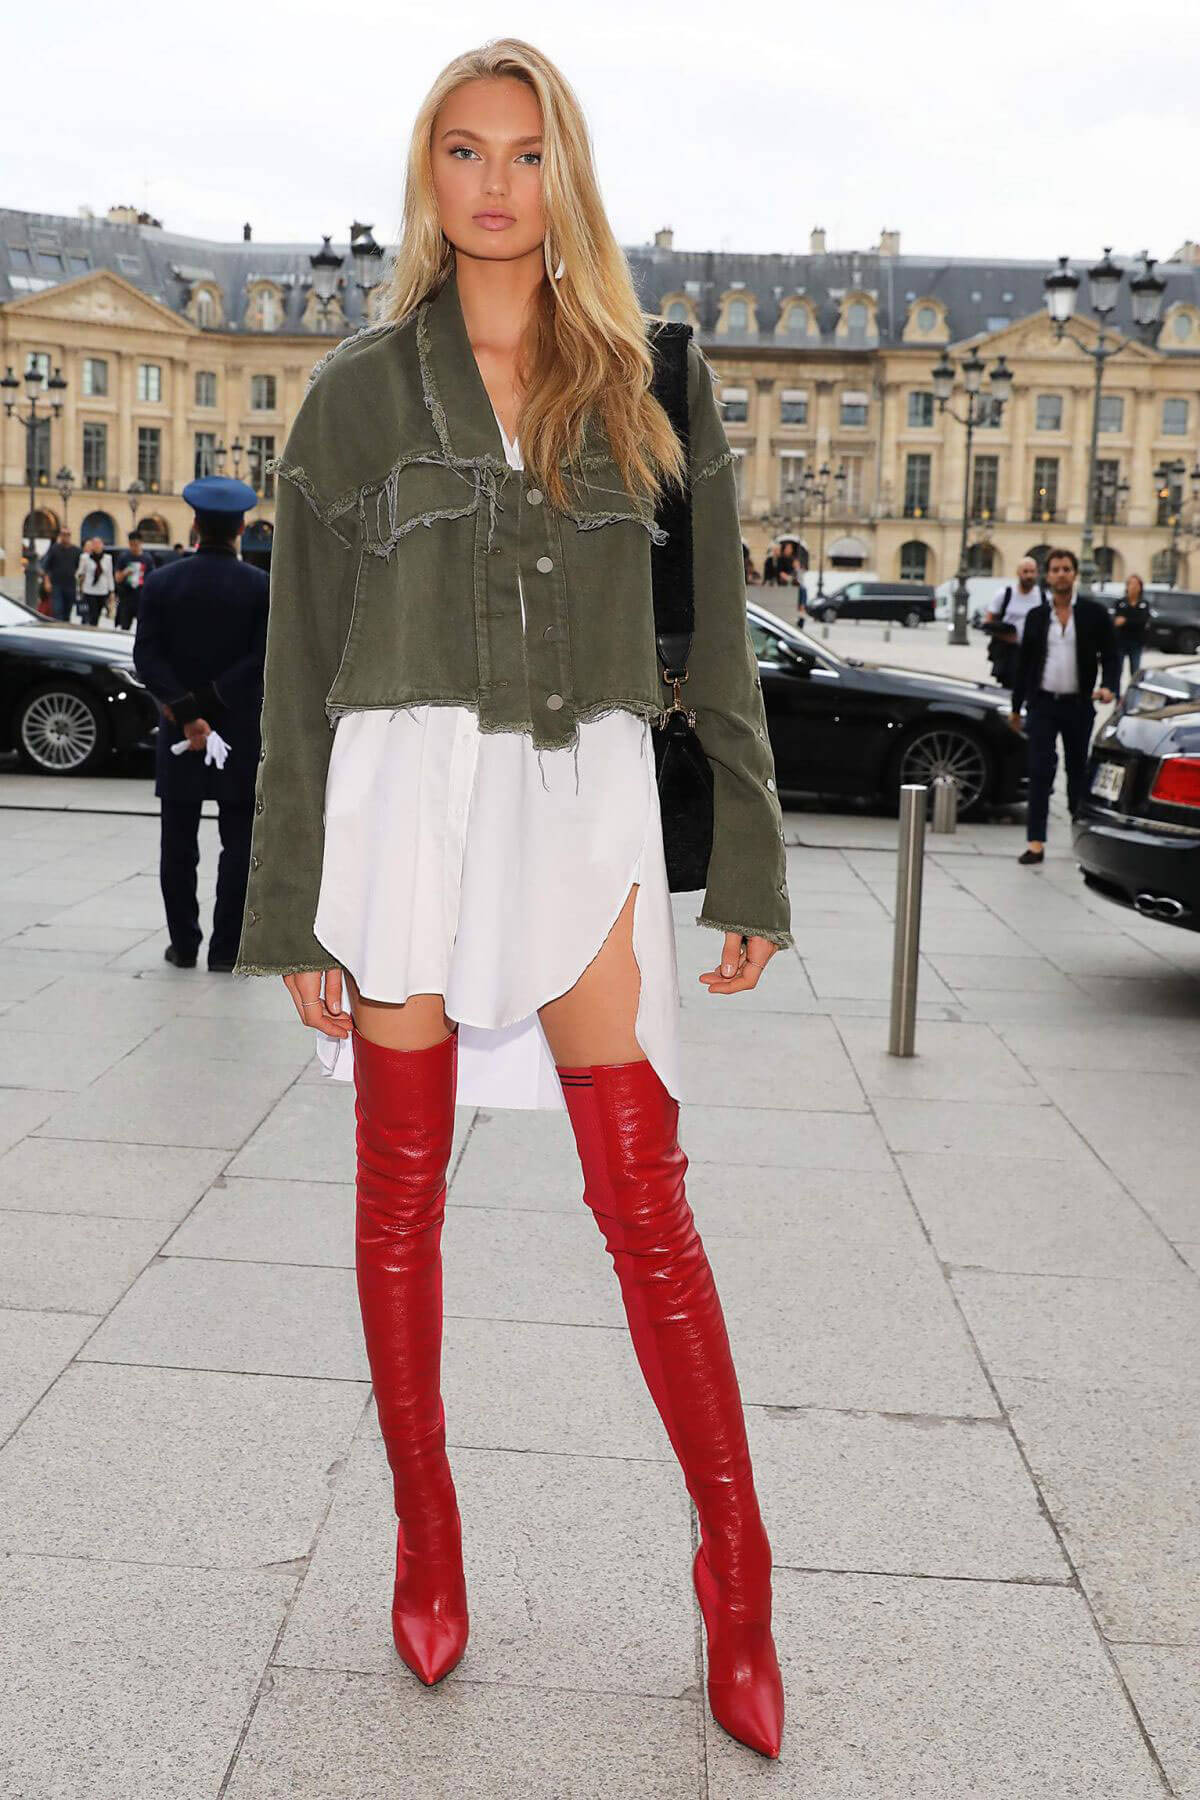 Romee Strijd shows off Lean Legs Out at Paris Fashion Week